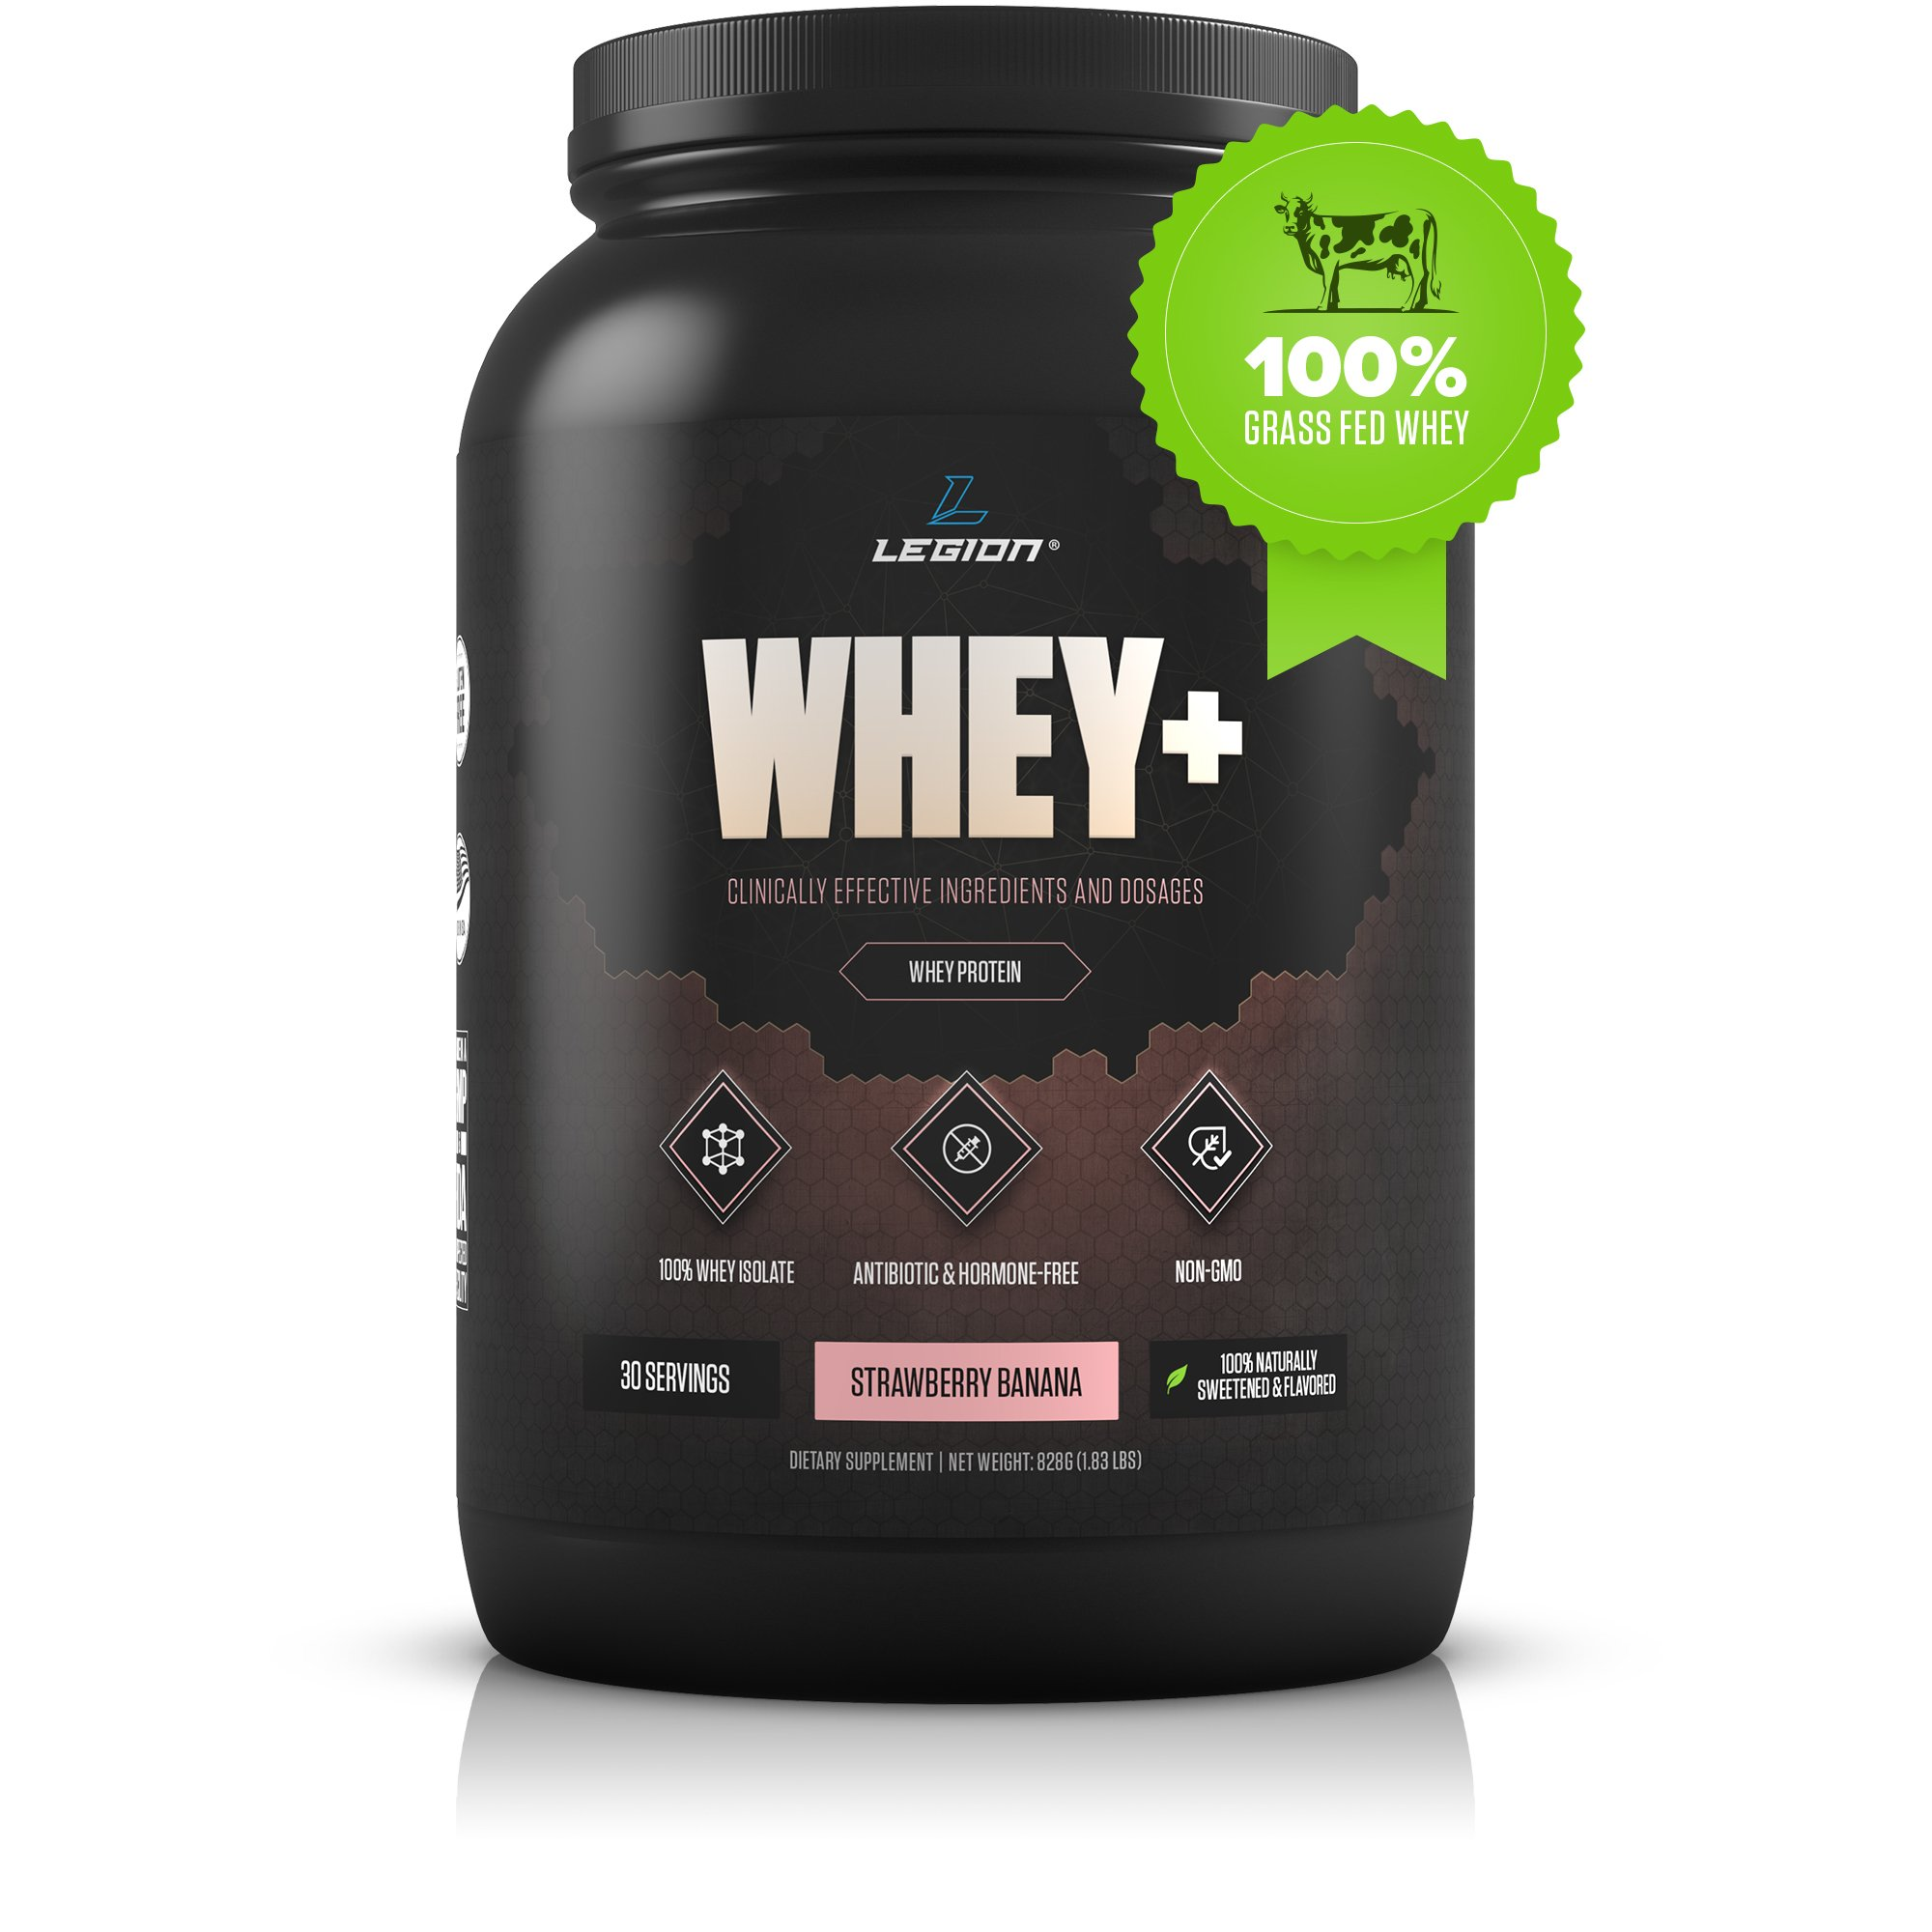 Legion Whey+ Strawberry Banana Whey Isolate Protein Powder from Grass Fed Cows - Low Carb, Low Calorie, Non-GMO, Lactose Free, Gluten Free, Sugar Free. Great for Weight Loss & Bodybuilding, 30 Svgs. by LEGION